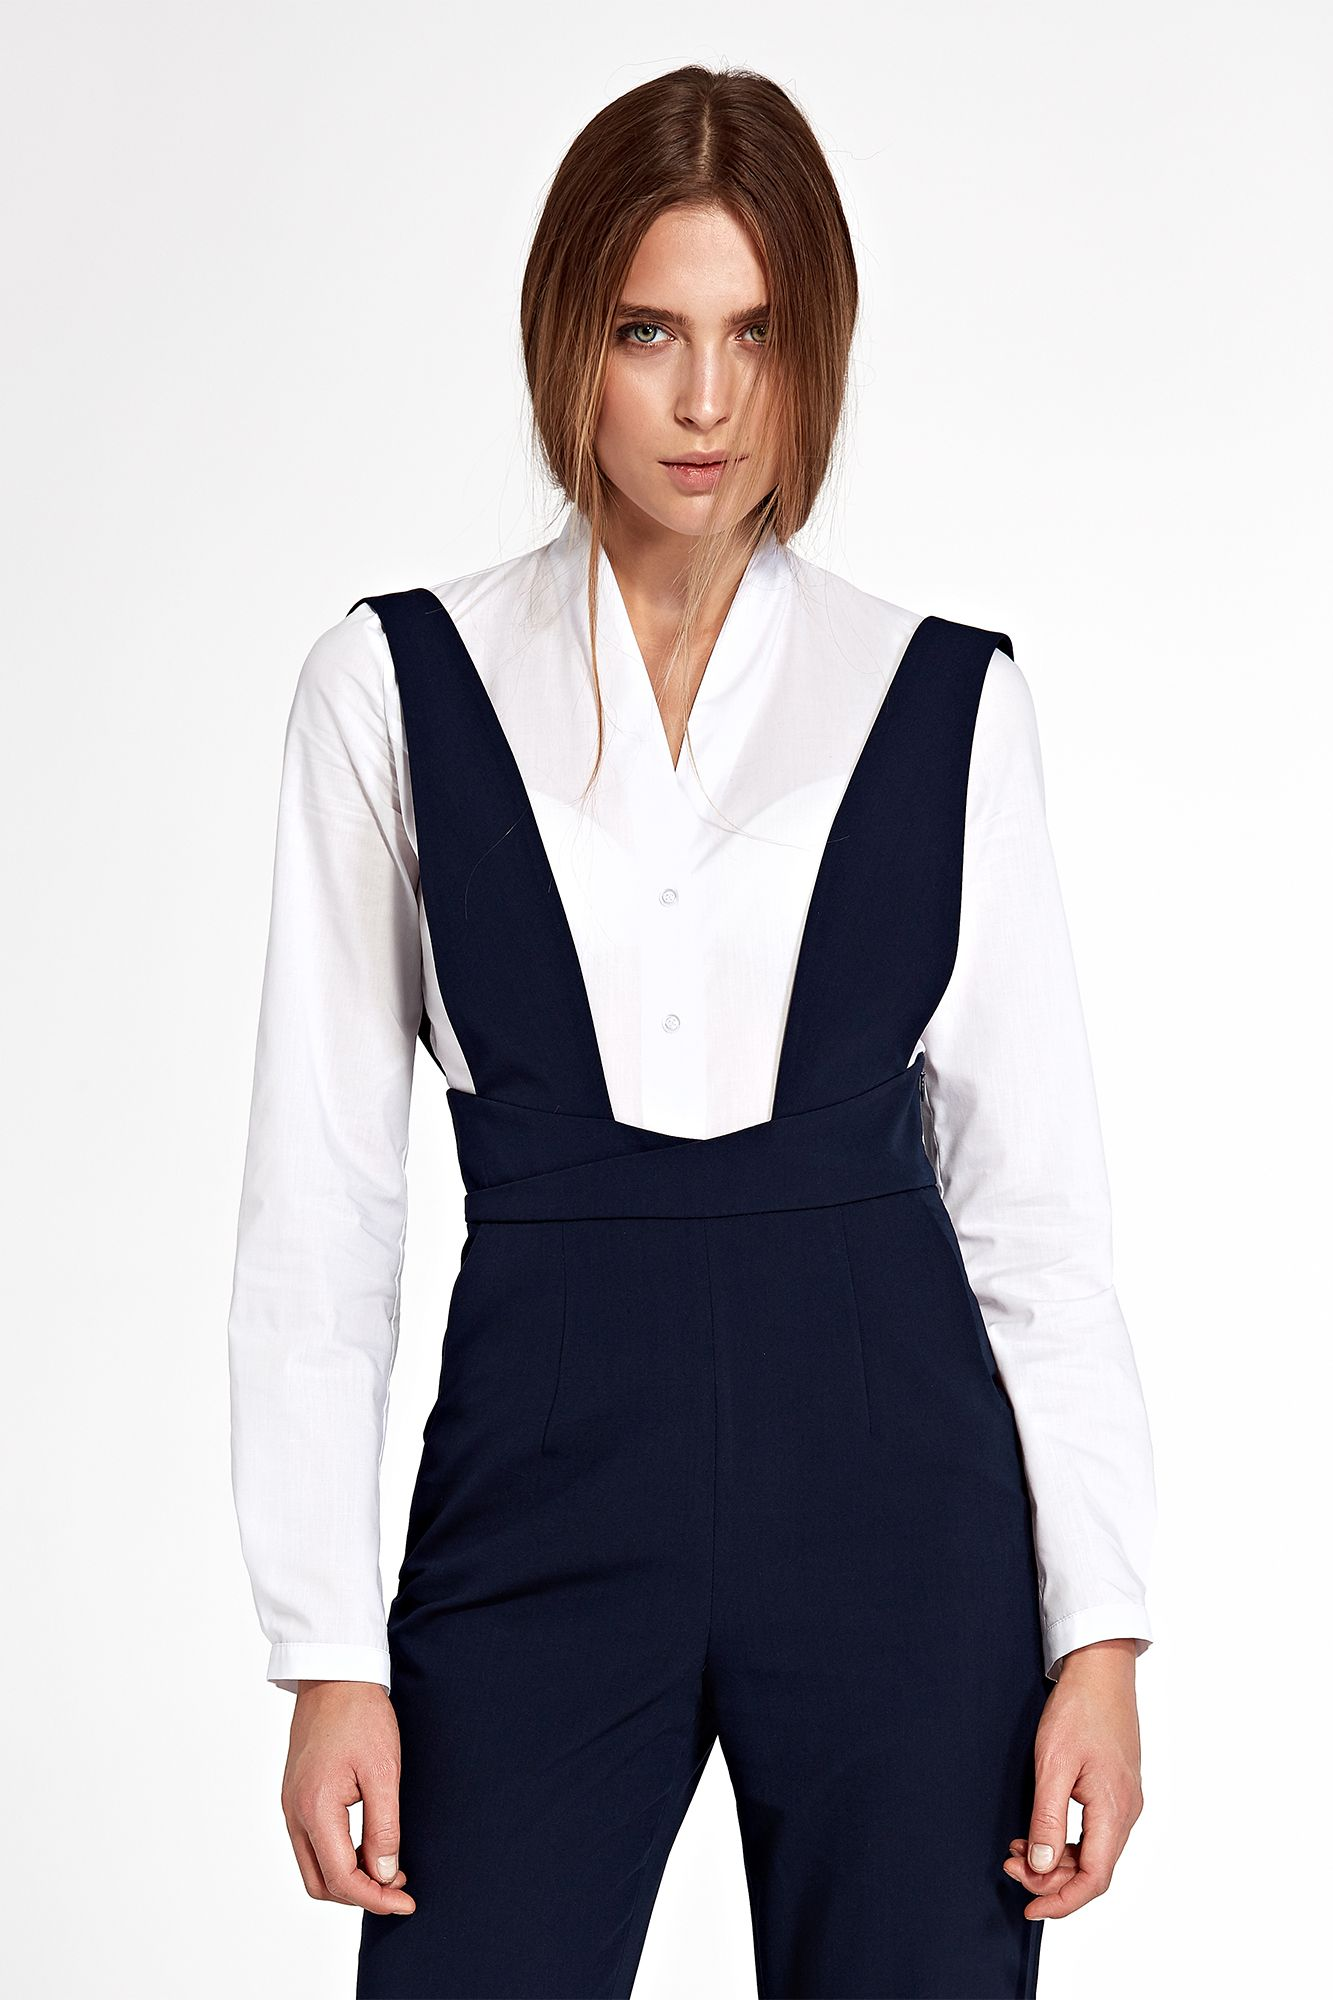 Body shirt without collar - white